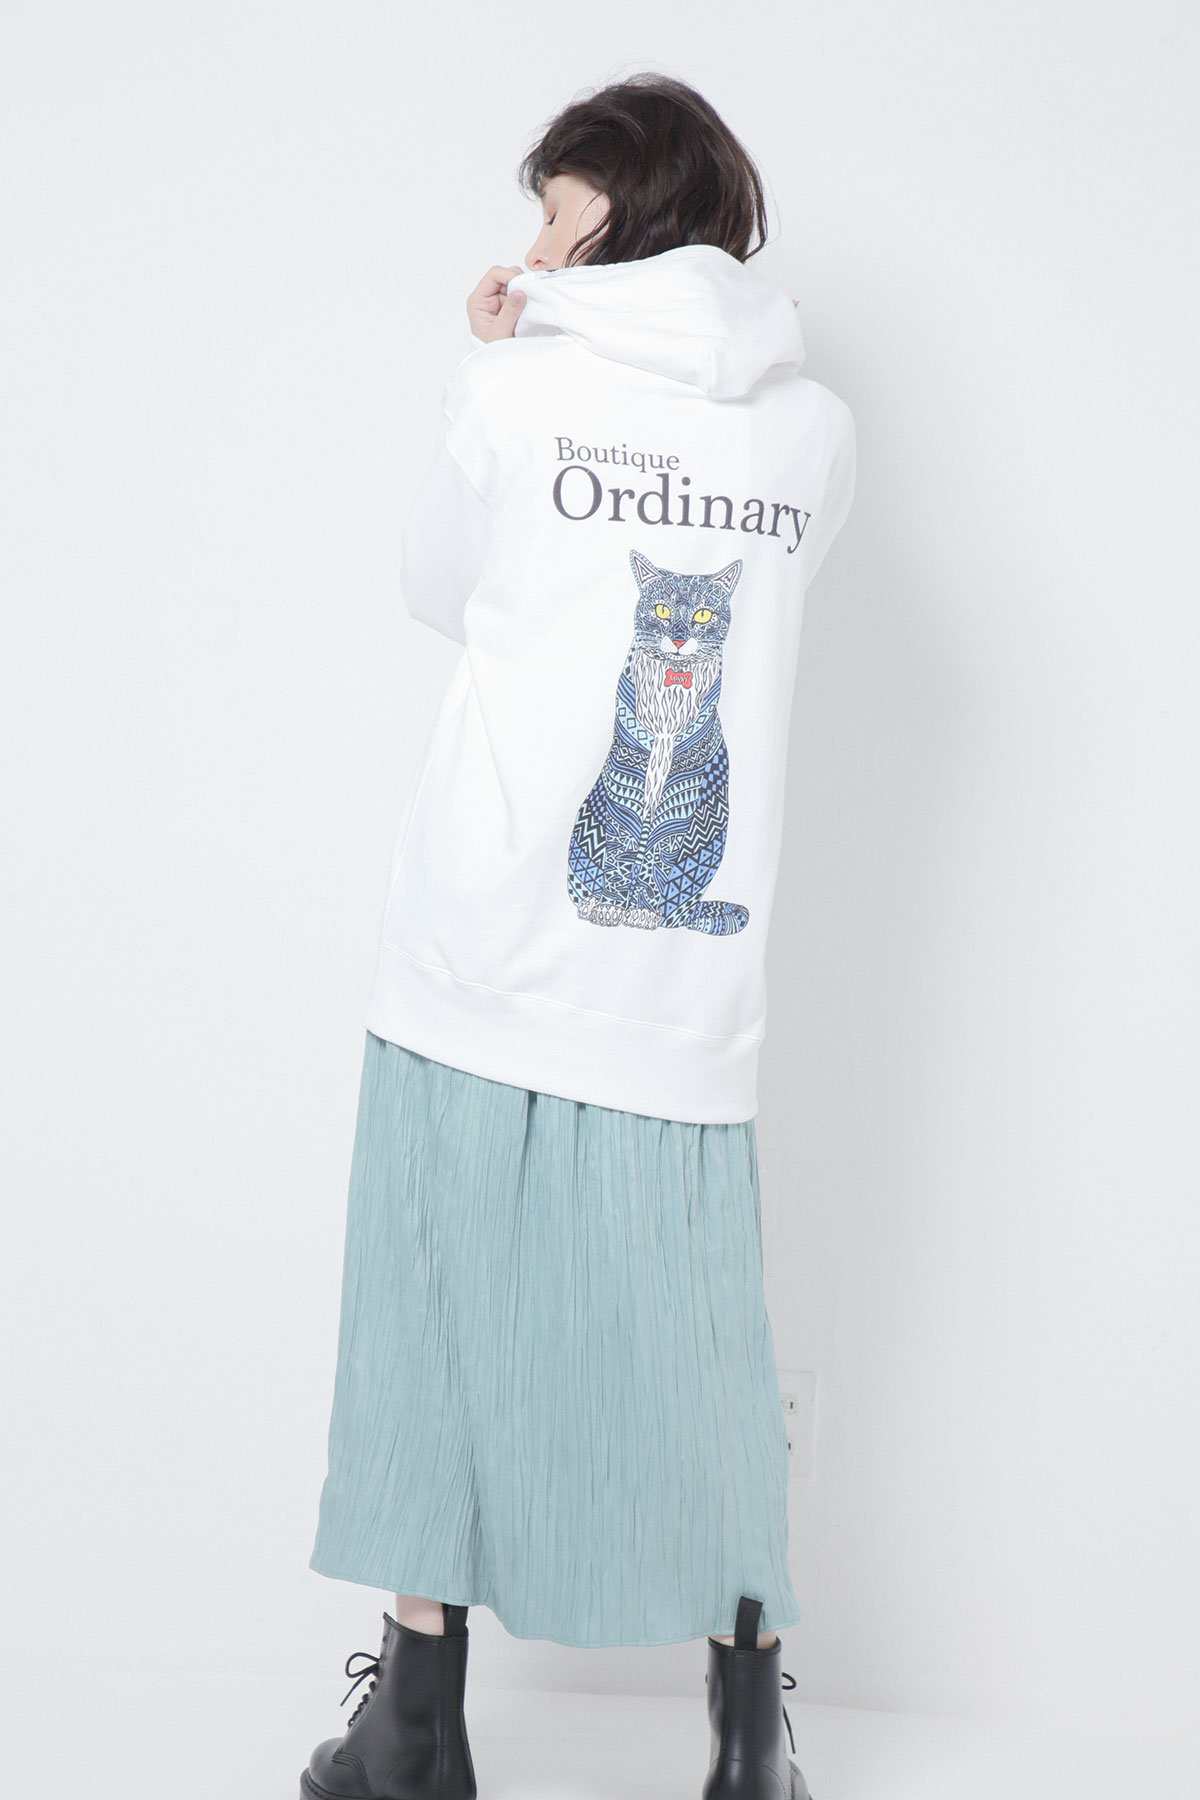 BO205730-white Ordinary Meets Mulga the artist Sweat Hoodie -WHITE-【BO205730】Del.Sep.